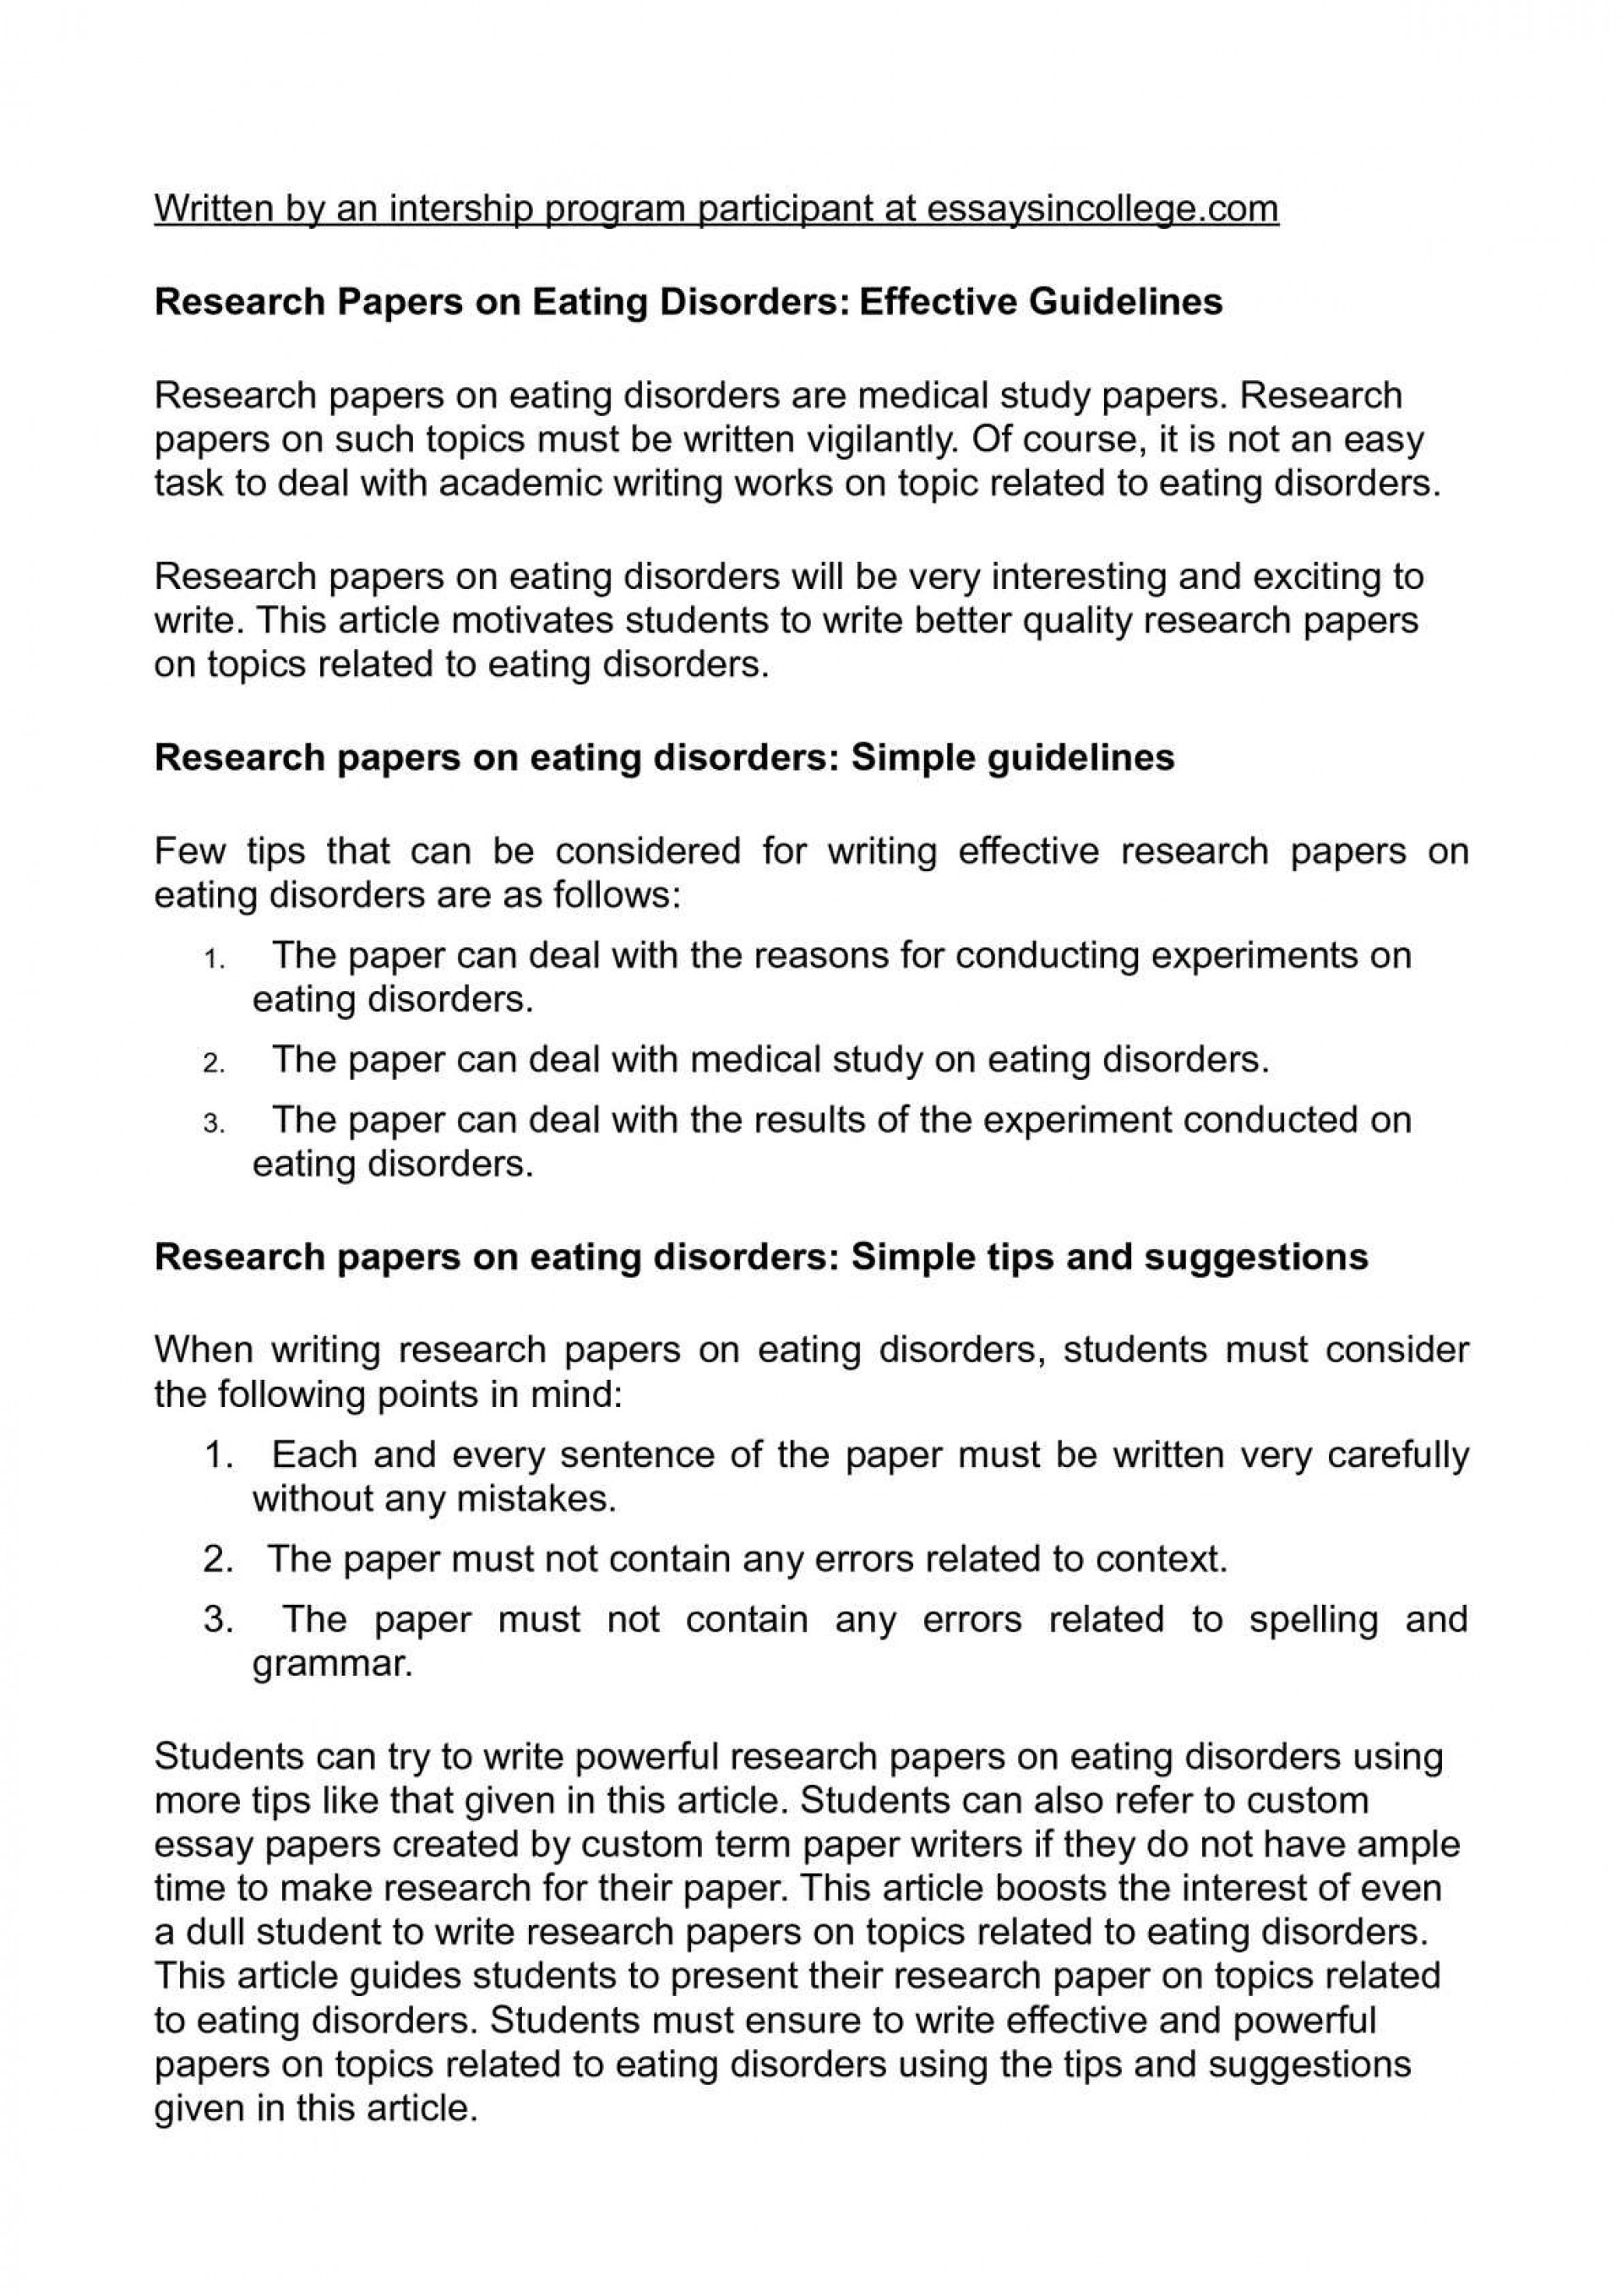 018 Research Paper On Eating Disorders Wonderful And The Media Psychological Essay 1920